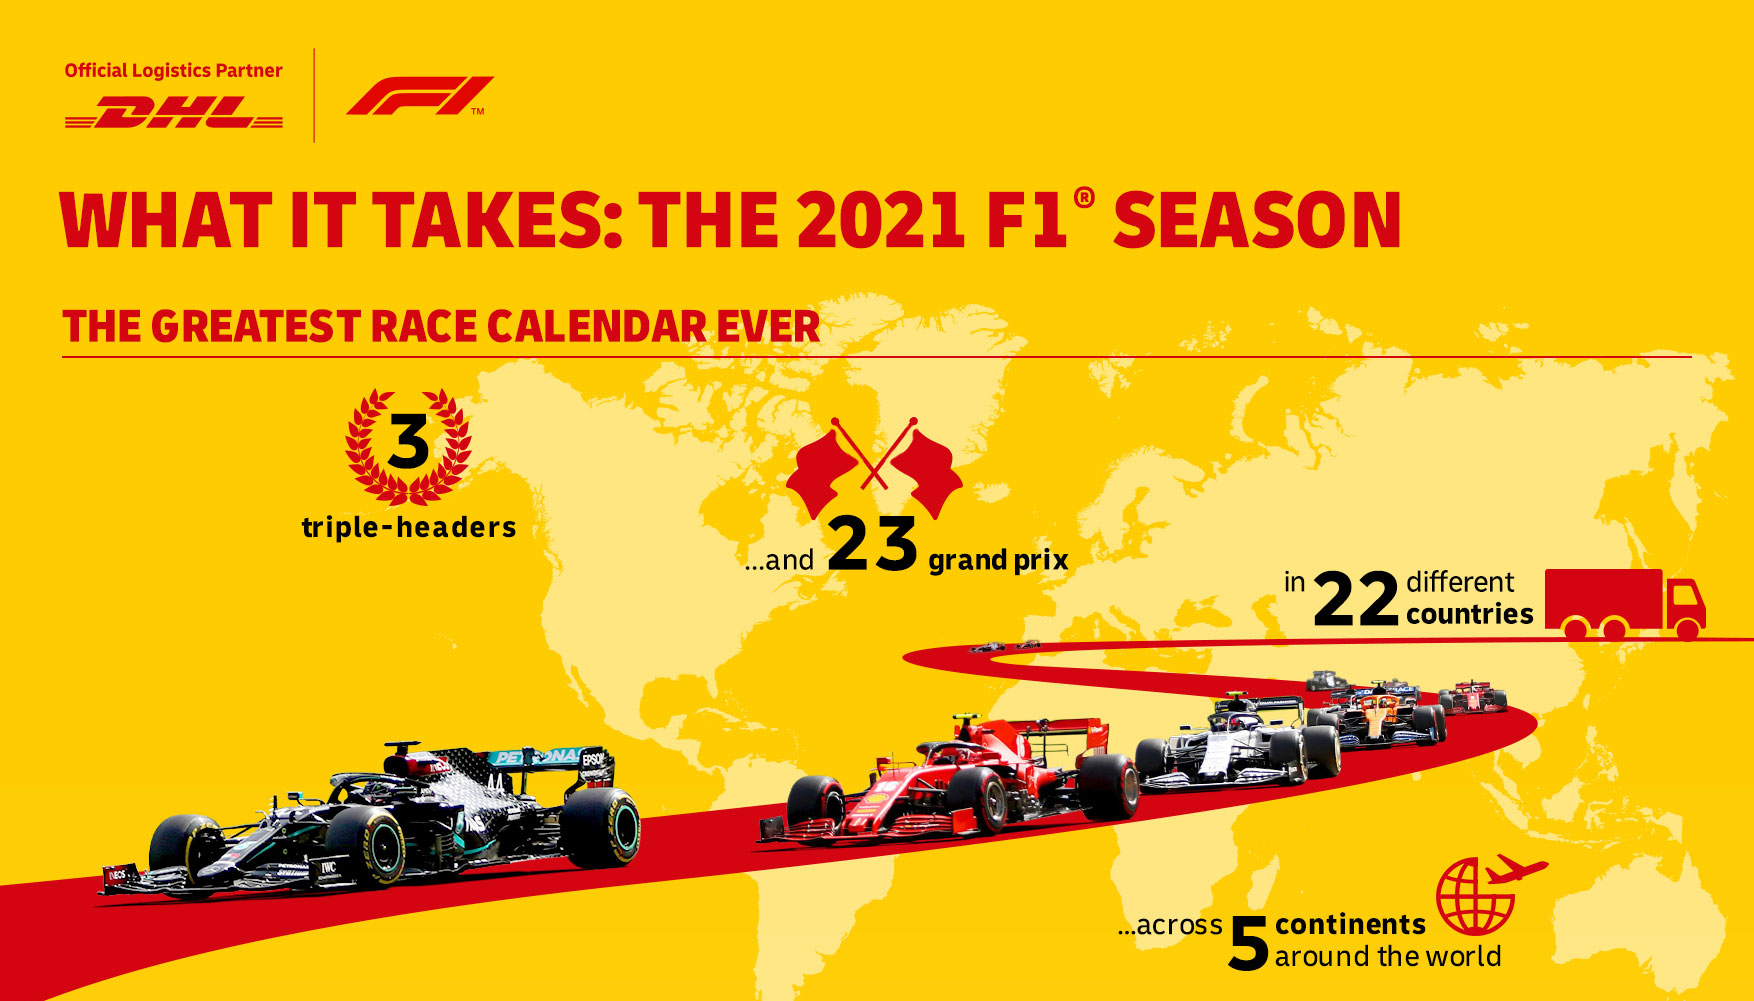 DHL and Formula 1 renew their multi-year partnership ahead of the start of the new racing season